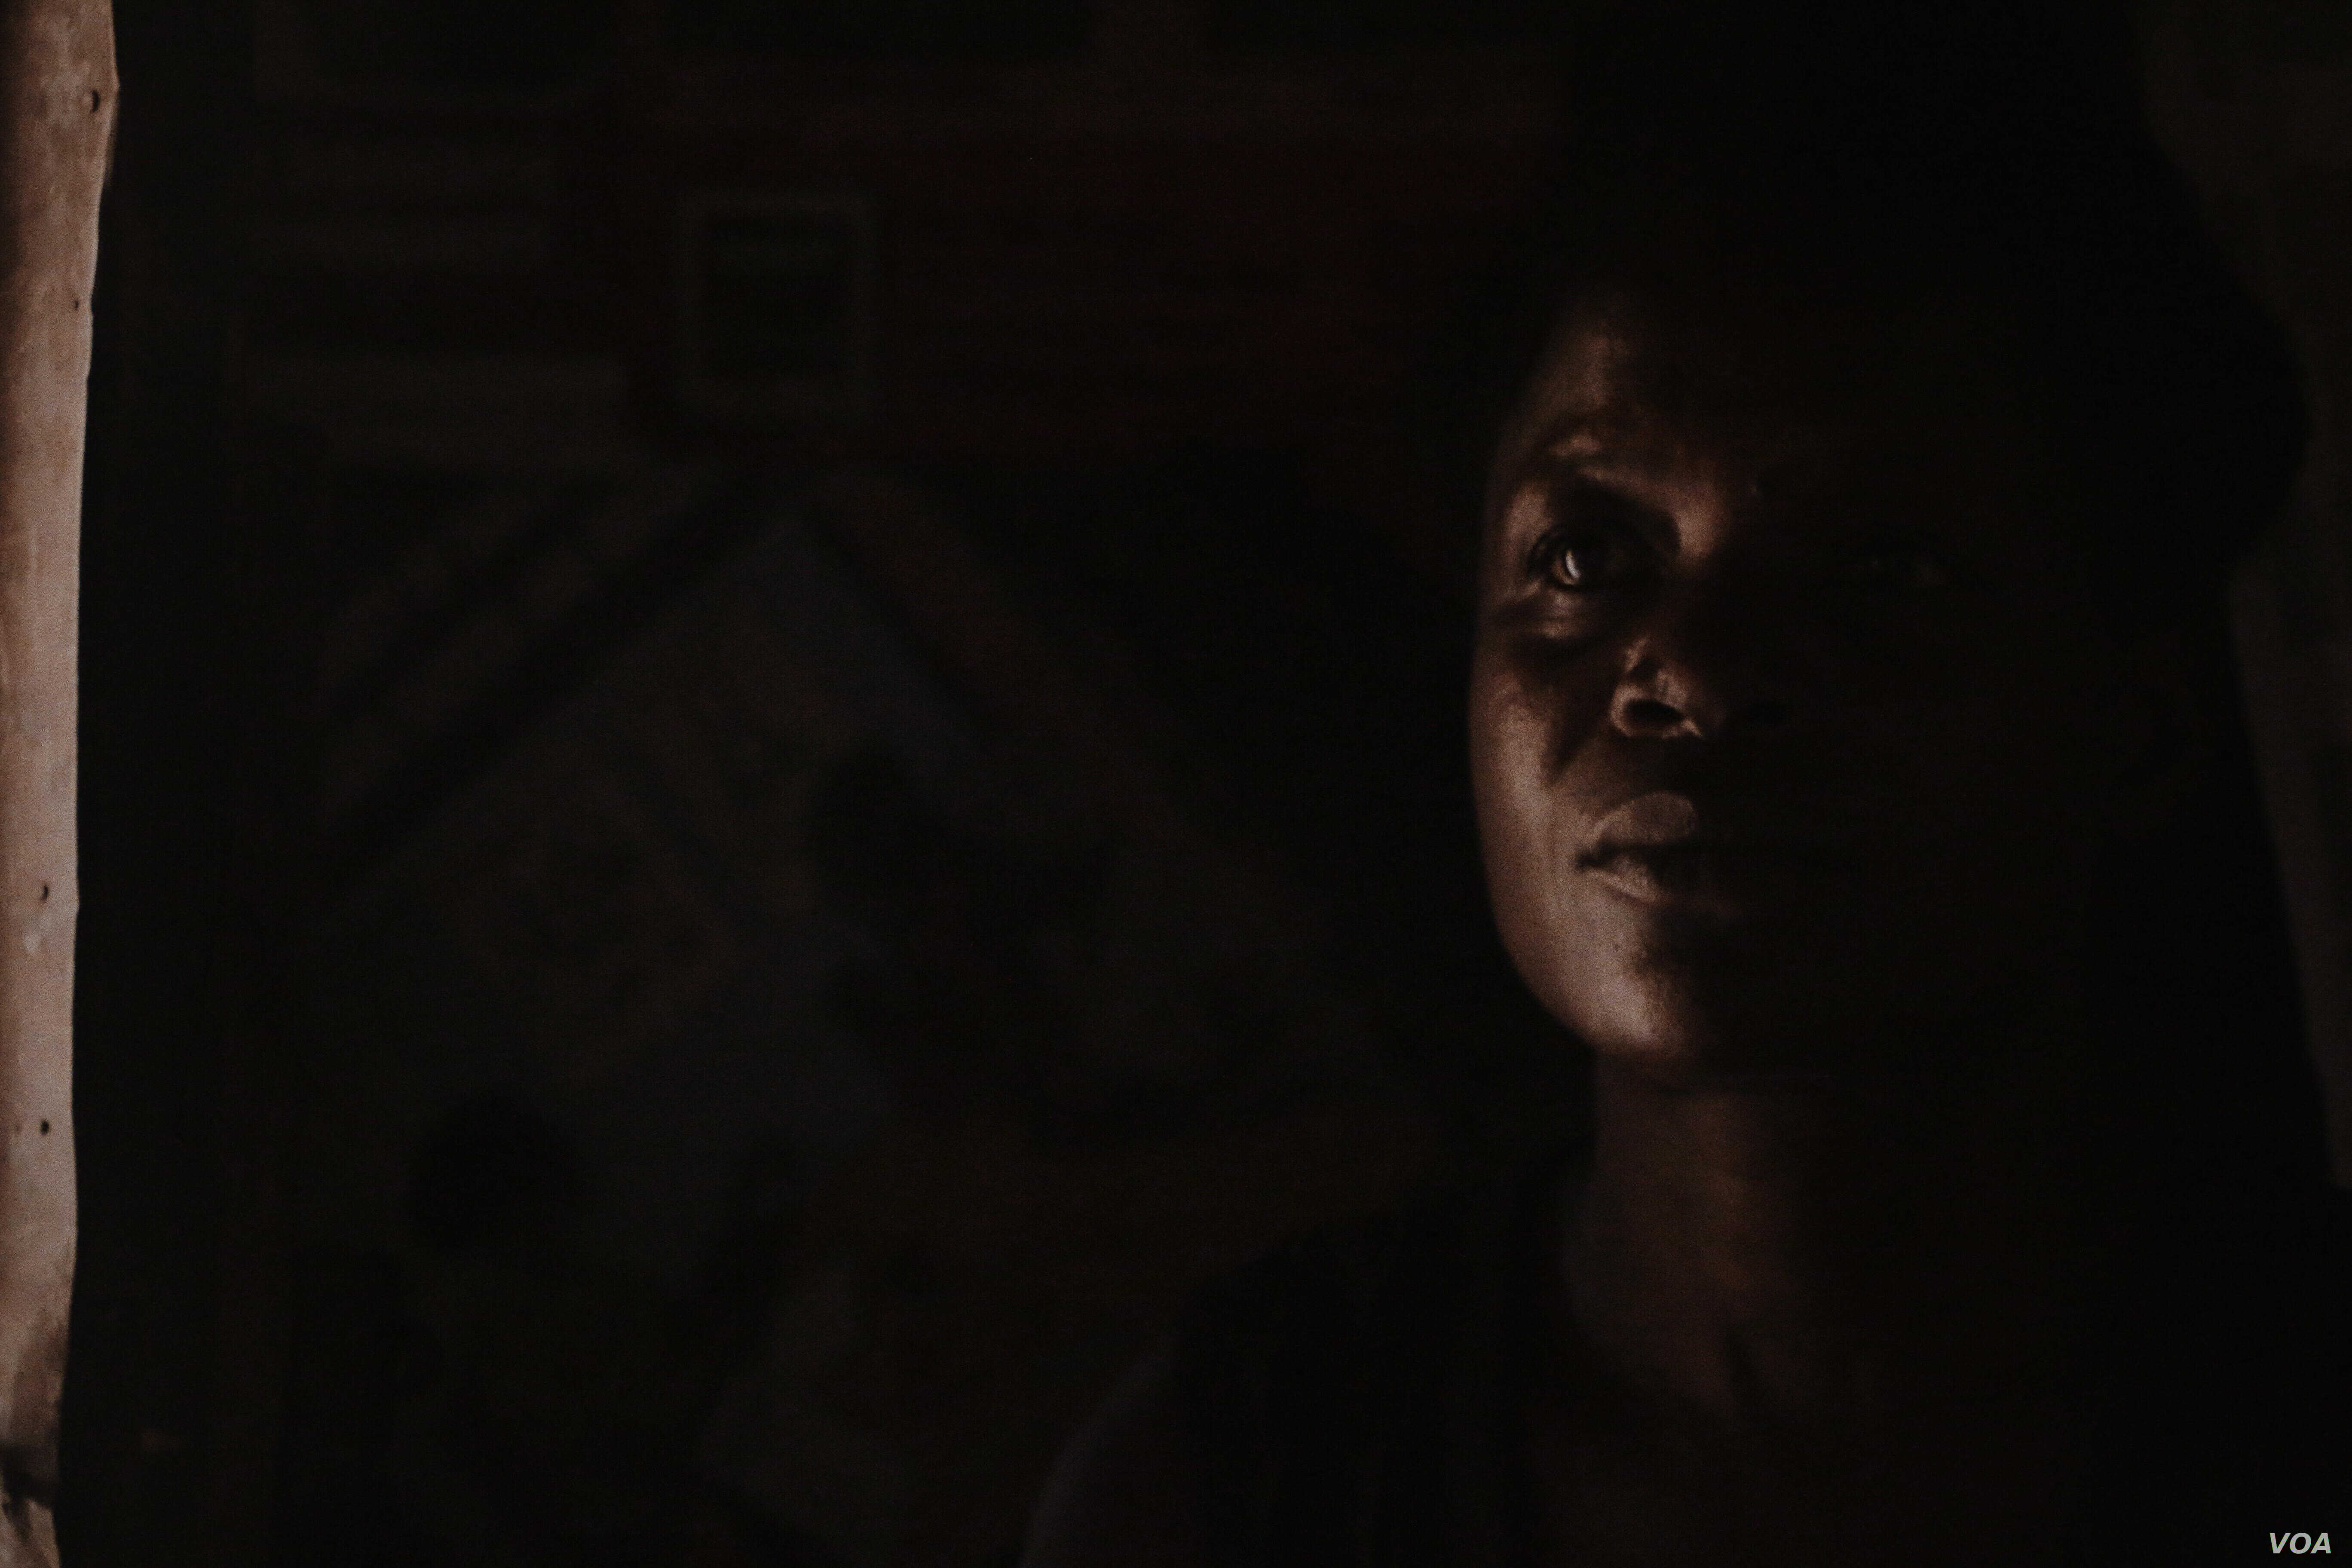 Florence Ayot got amnesty after 15 years in captivity with the LRA, Gulu, Uganda, Oct., 2015. (S. Roosblad/VOA)